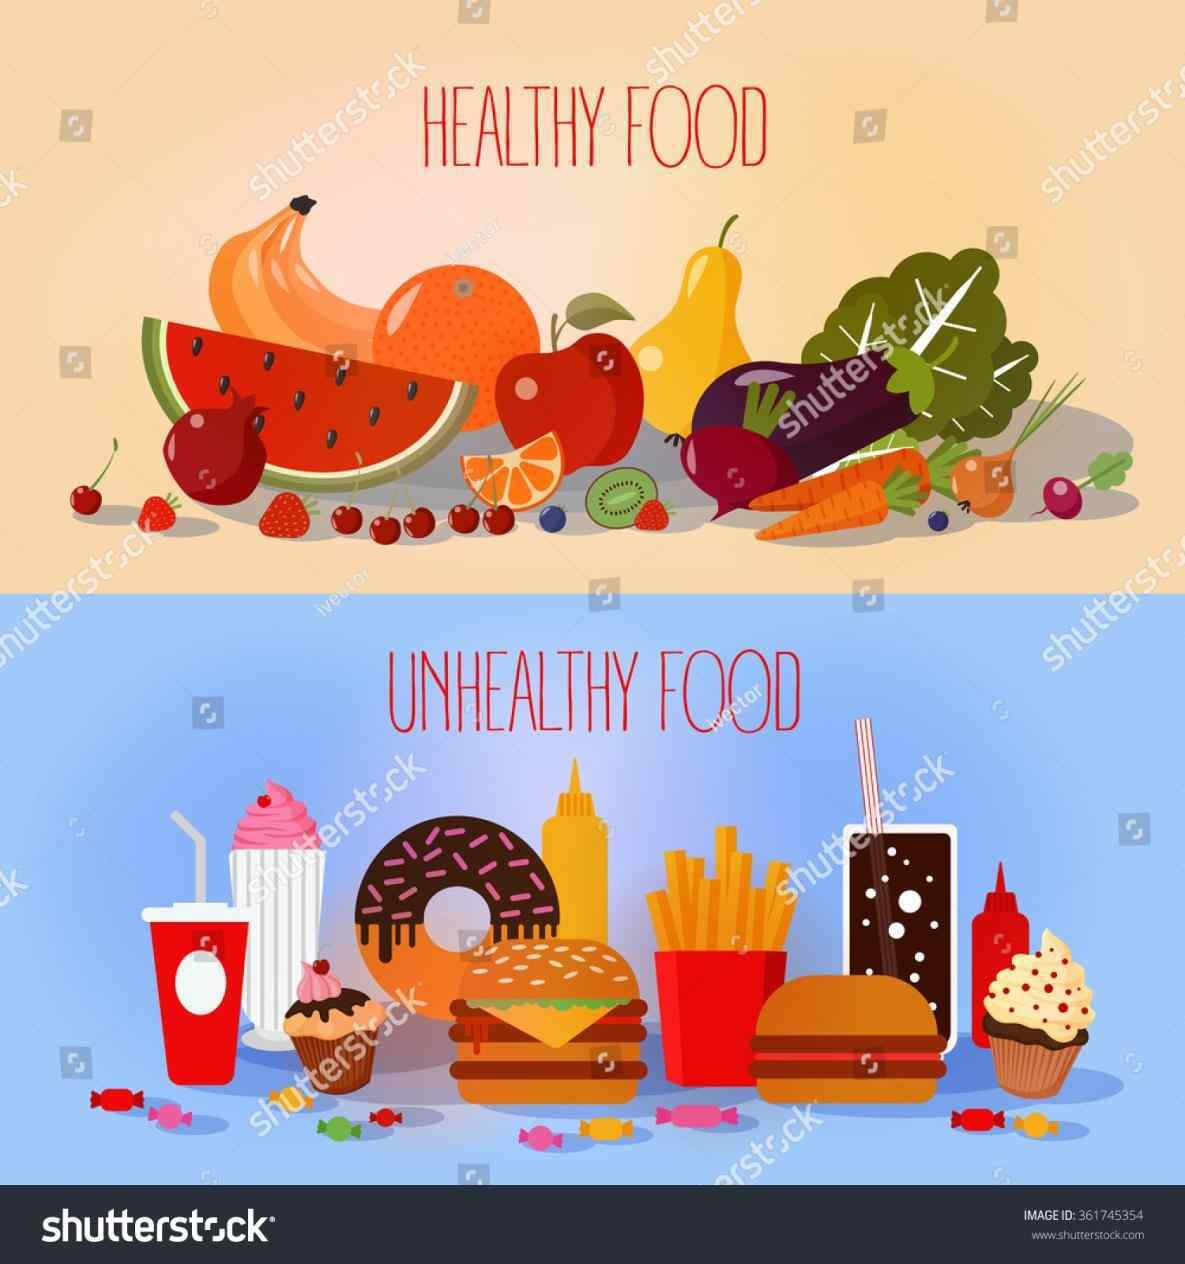 Catering clipart healthy eating. Food vs junk ogahealth